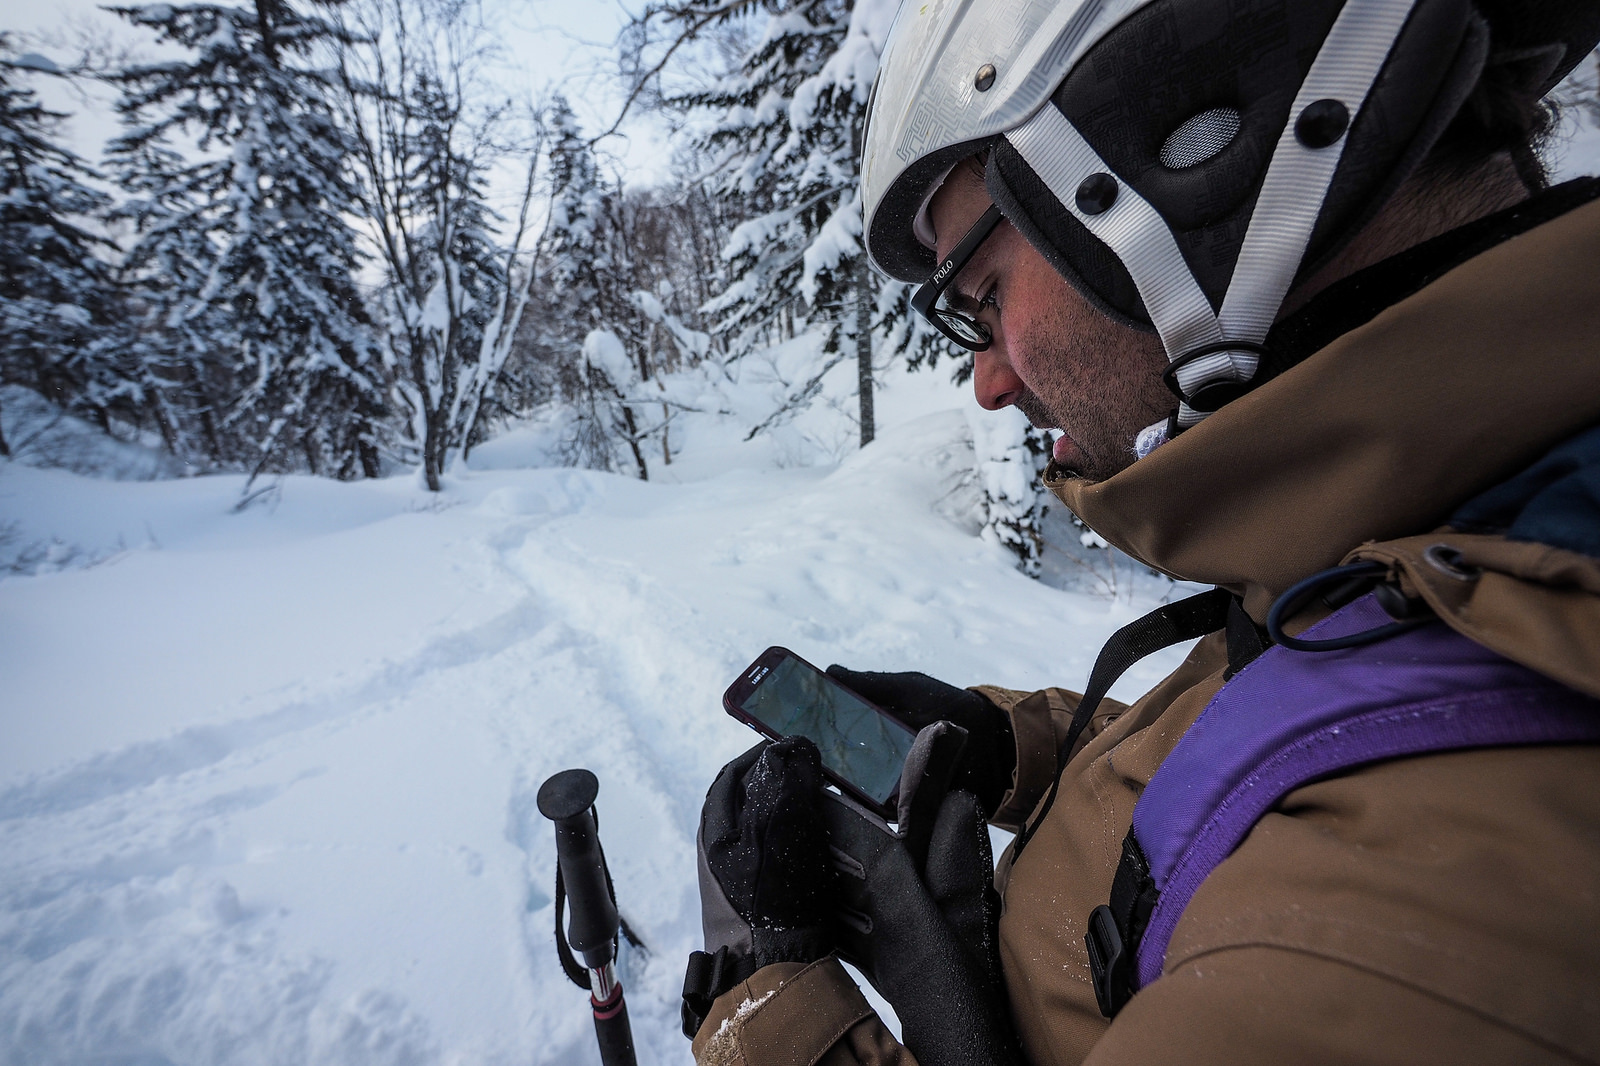 Notifying Japan Police about Backcountry Plans on the Web